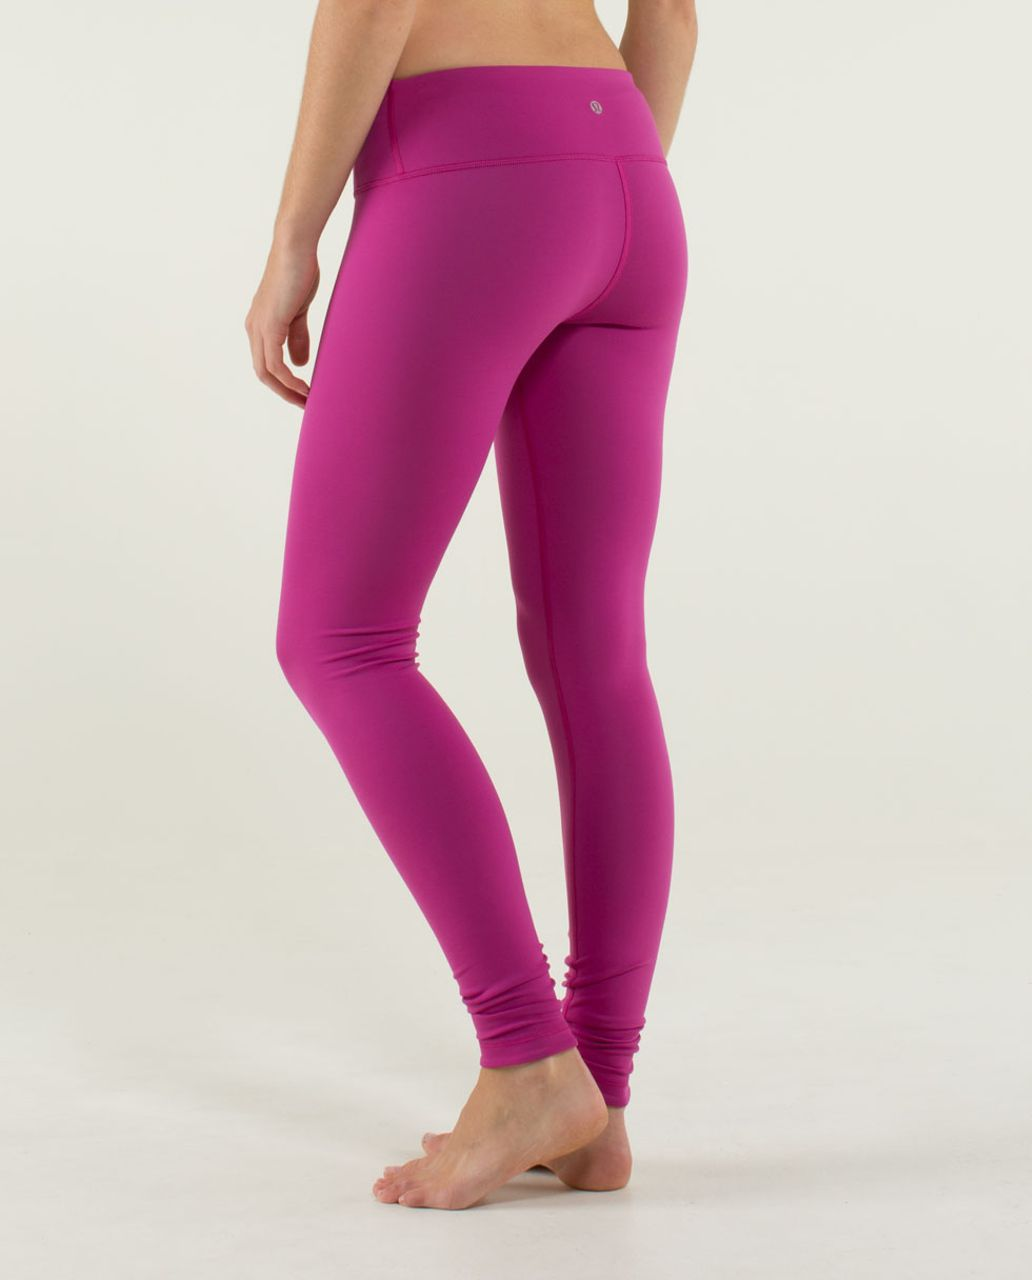 Lululemon Wunder Under Pant *Reversible - Black /  Raspberry